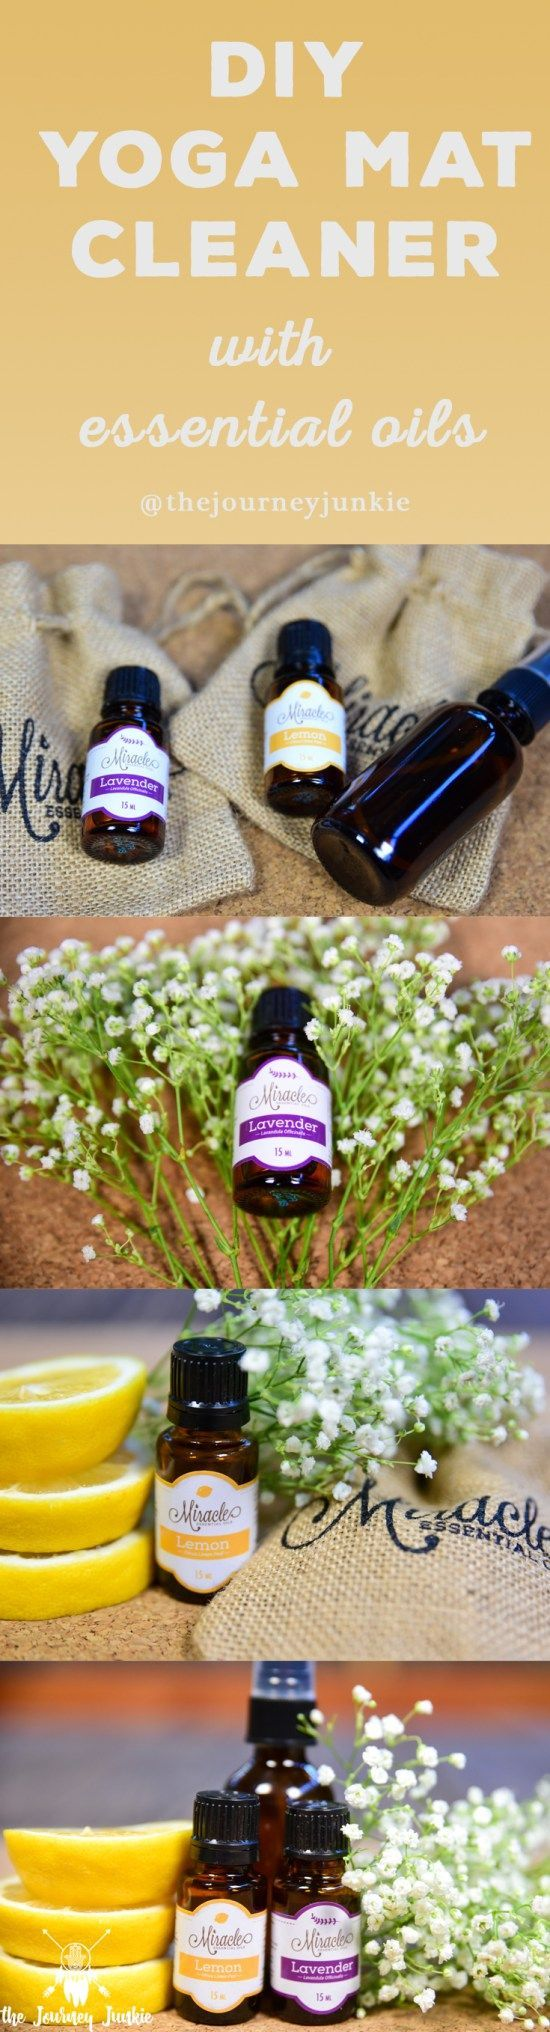 DIY Yoga Mat Cleaner Spray with Essential Oils - Pin now, buy your oils now, make your yoga mat cleaner later!